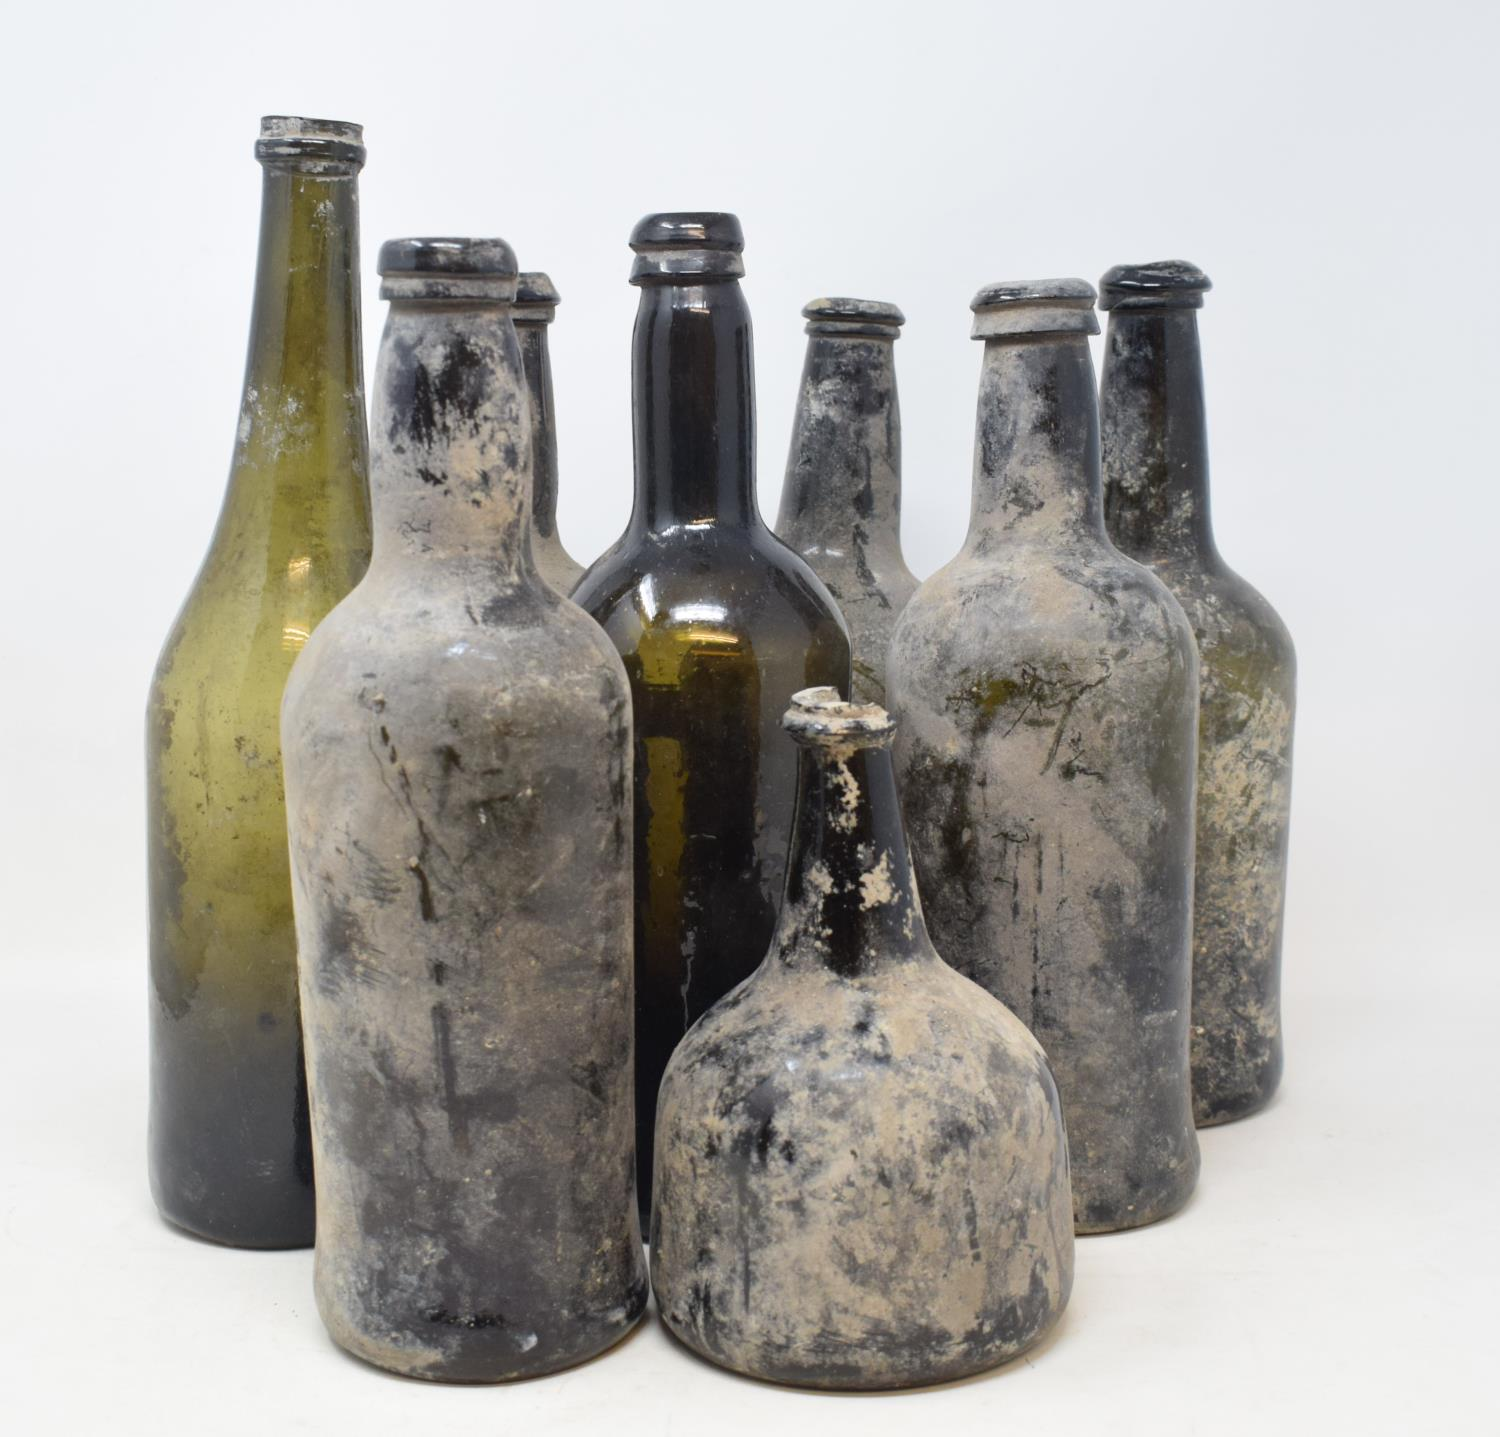 Lot 17 - An 18th century glass wine bottle, of mallet form, rim chipped, 17 cm high, and seven 19th century